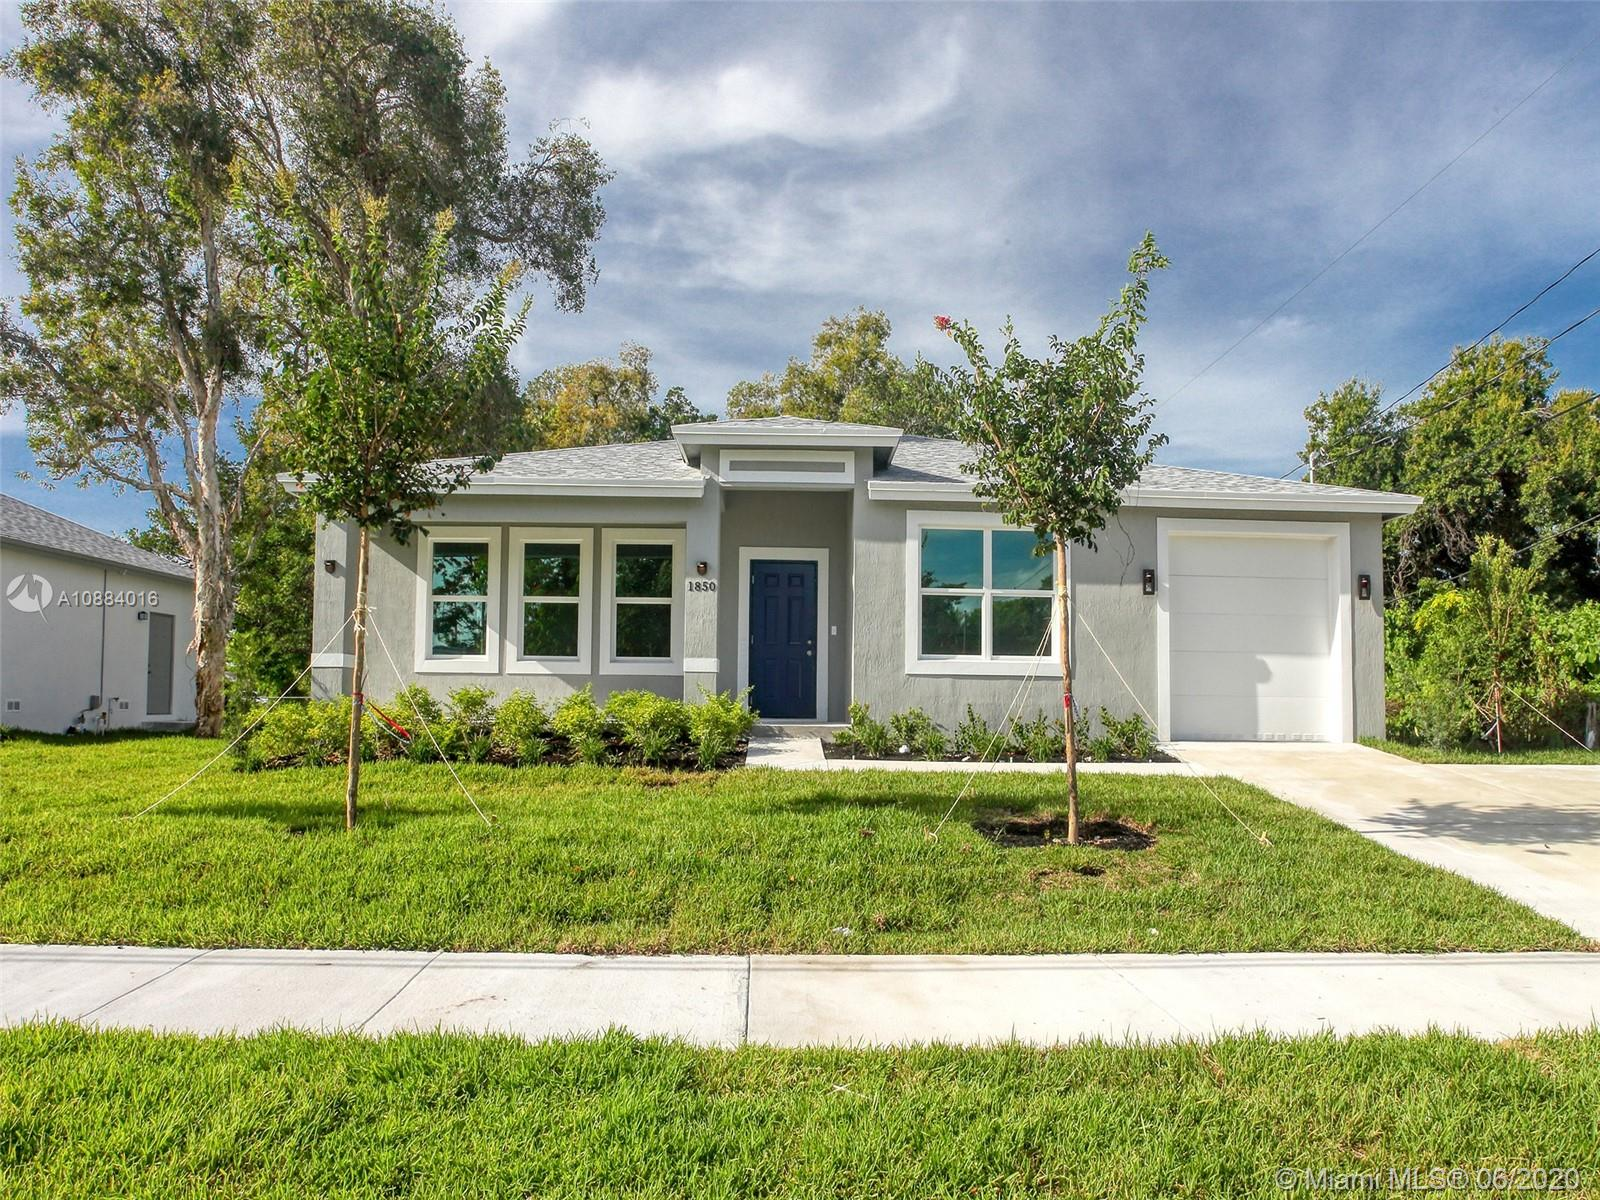 New construction 3 bed 2 bath 1 car garage dream home on a large lot on a quiet street in Oakland Park.   Modern white kitchen with black granite countertops, tile throughout.  Large master with walk in shower and large walk in closet.  Features include hurricane impact glass windows and doors, tankless water heater, energy efficient air conditioner, and all stainless steel kitchen appliances.  Large laundry room with washer and dryer included.  No association, no fees.  Includes 1 year builders warranty.